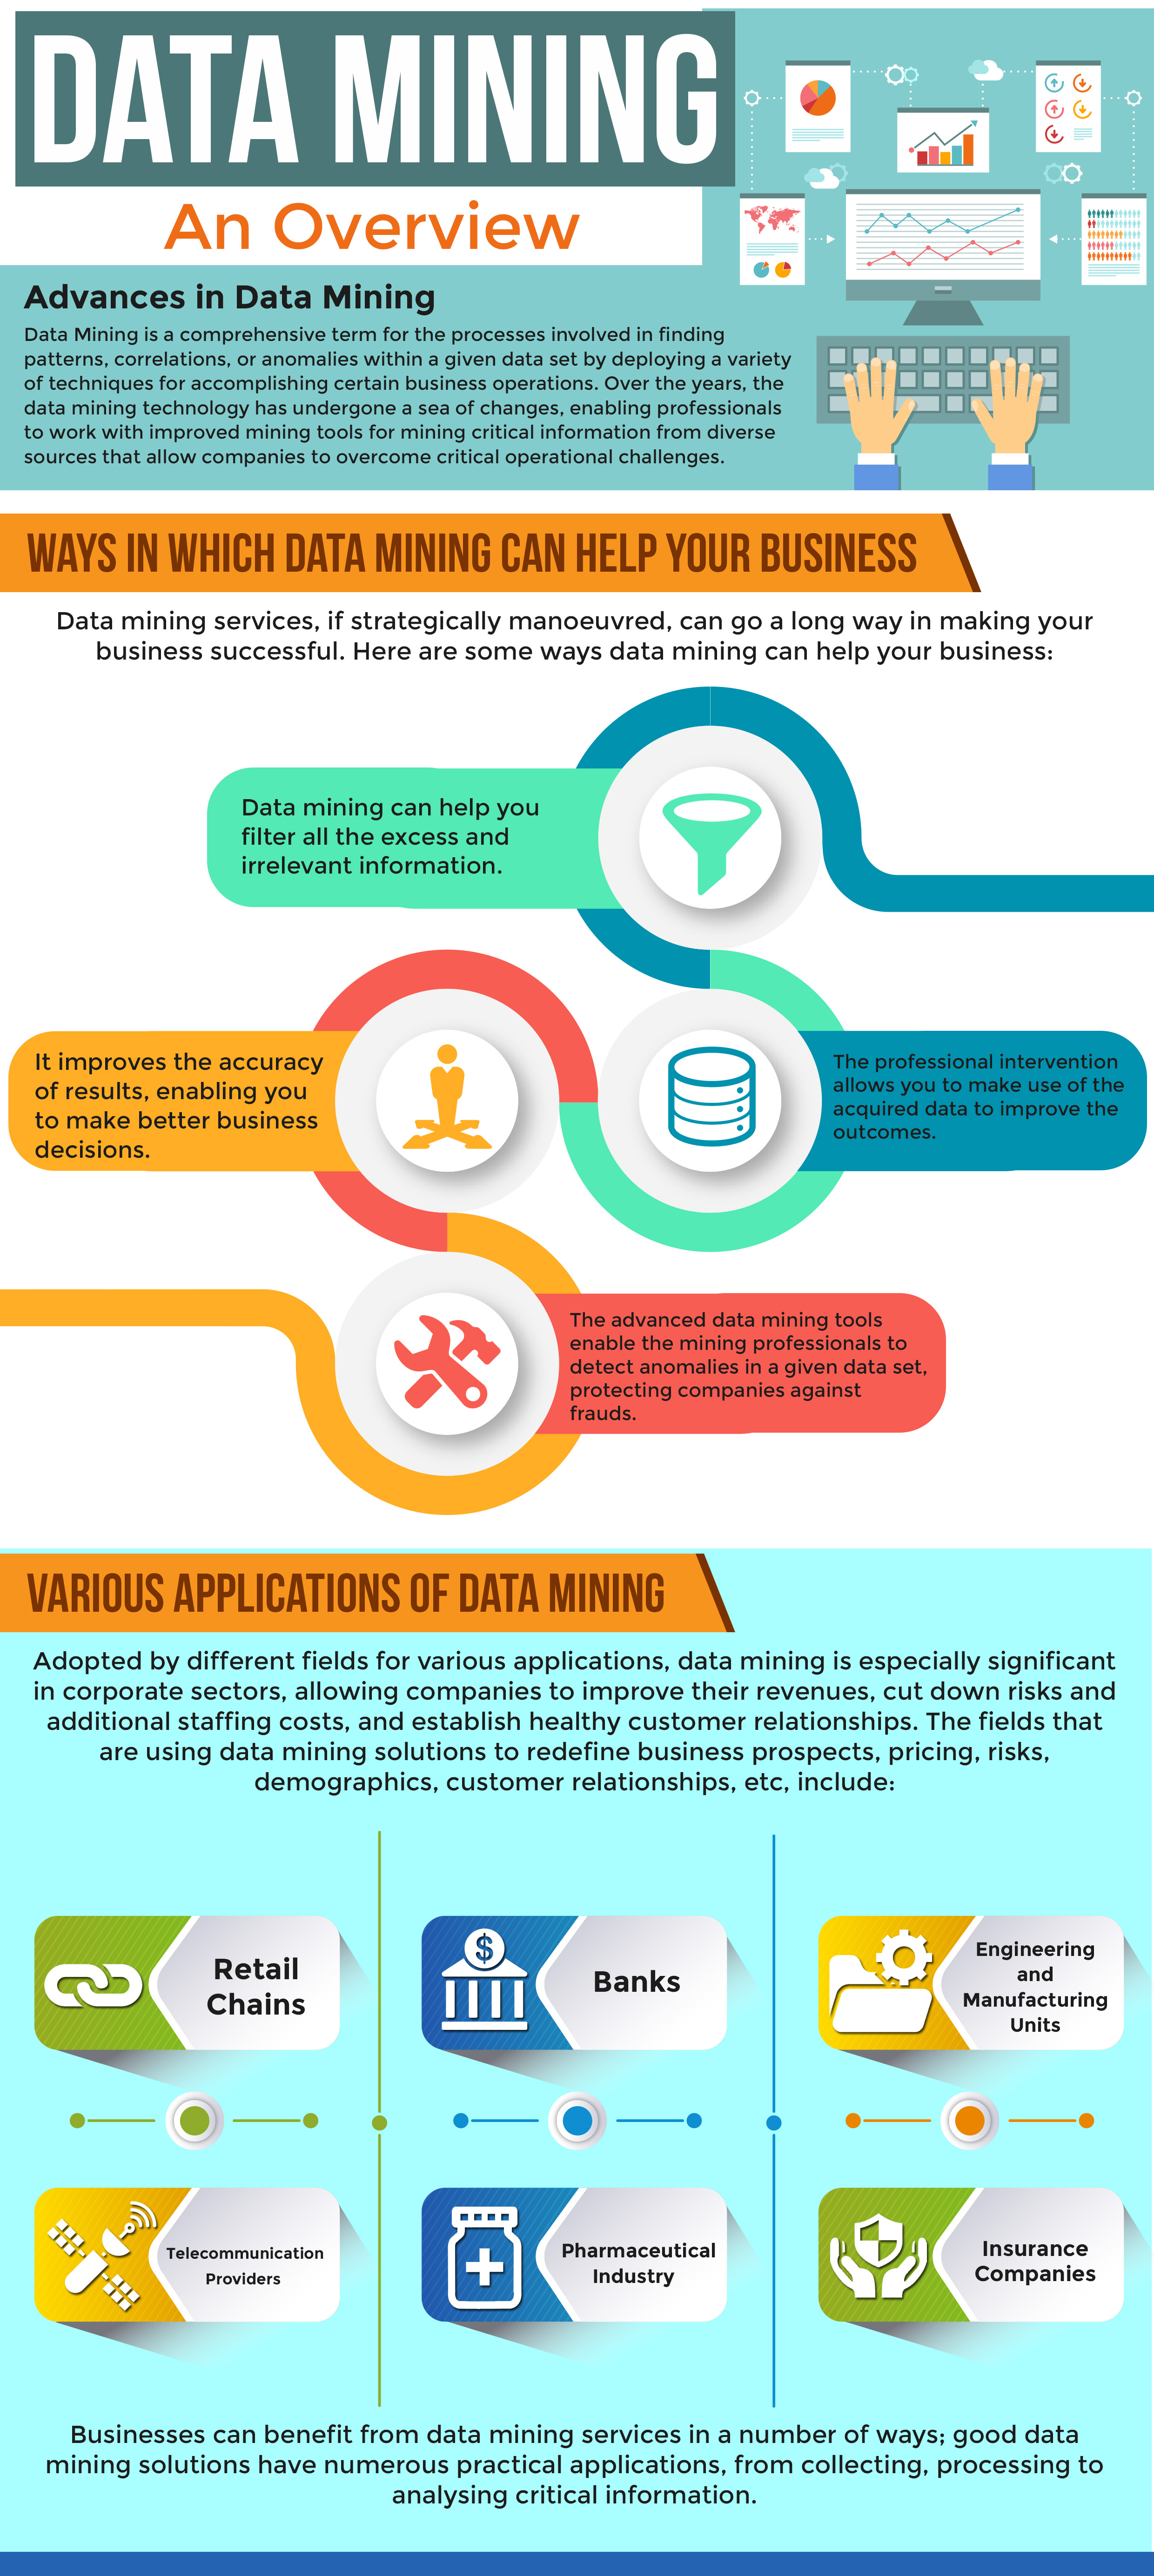 An Introduction to Data Mining and its Applications Infographic